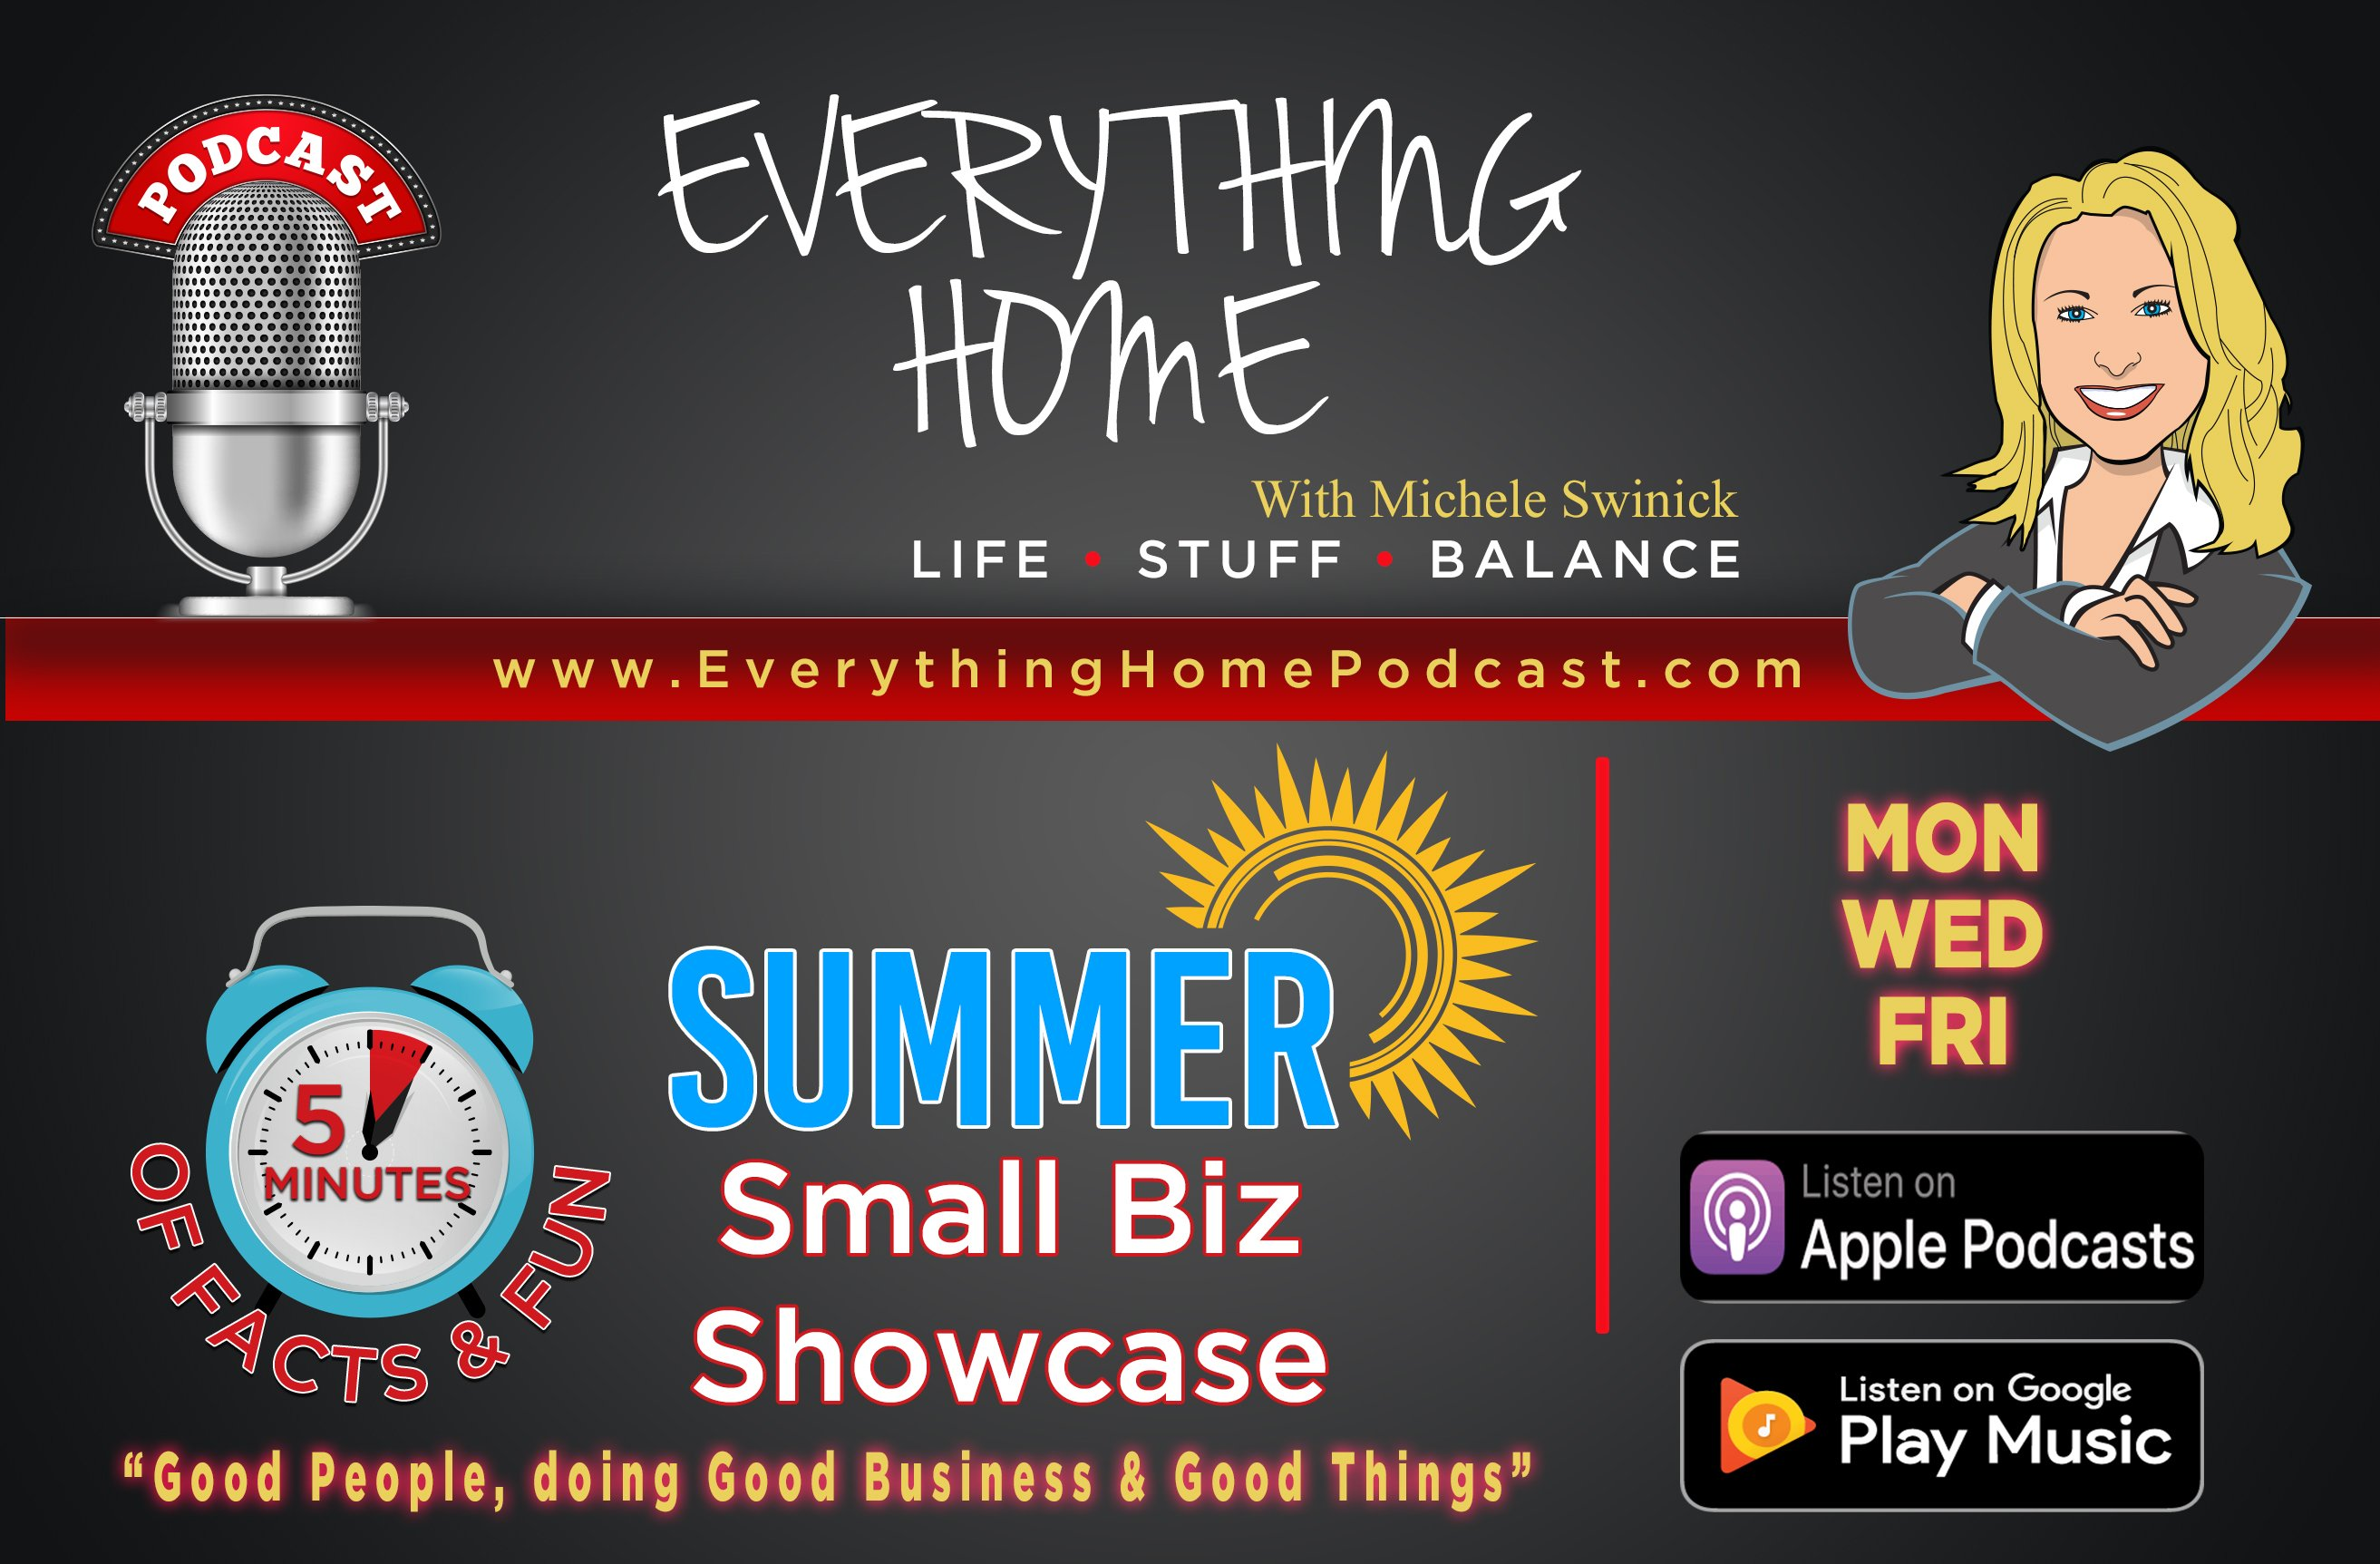 EVERYTHING HOME PODCAST - SUMMER SMALL BIZ SHOWCASE